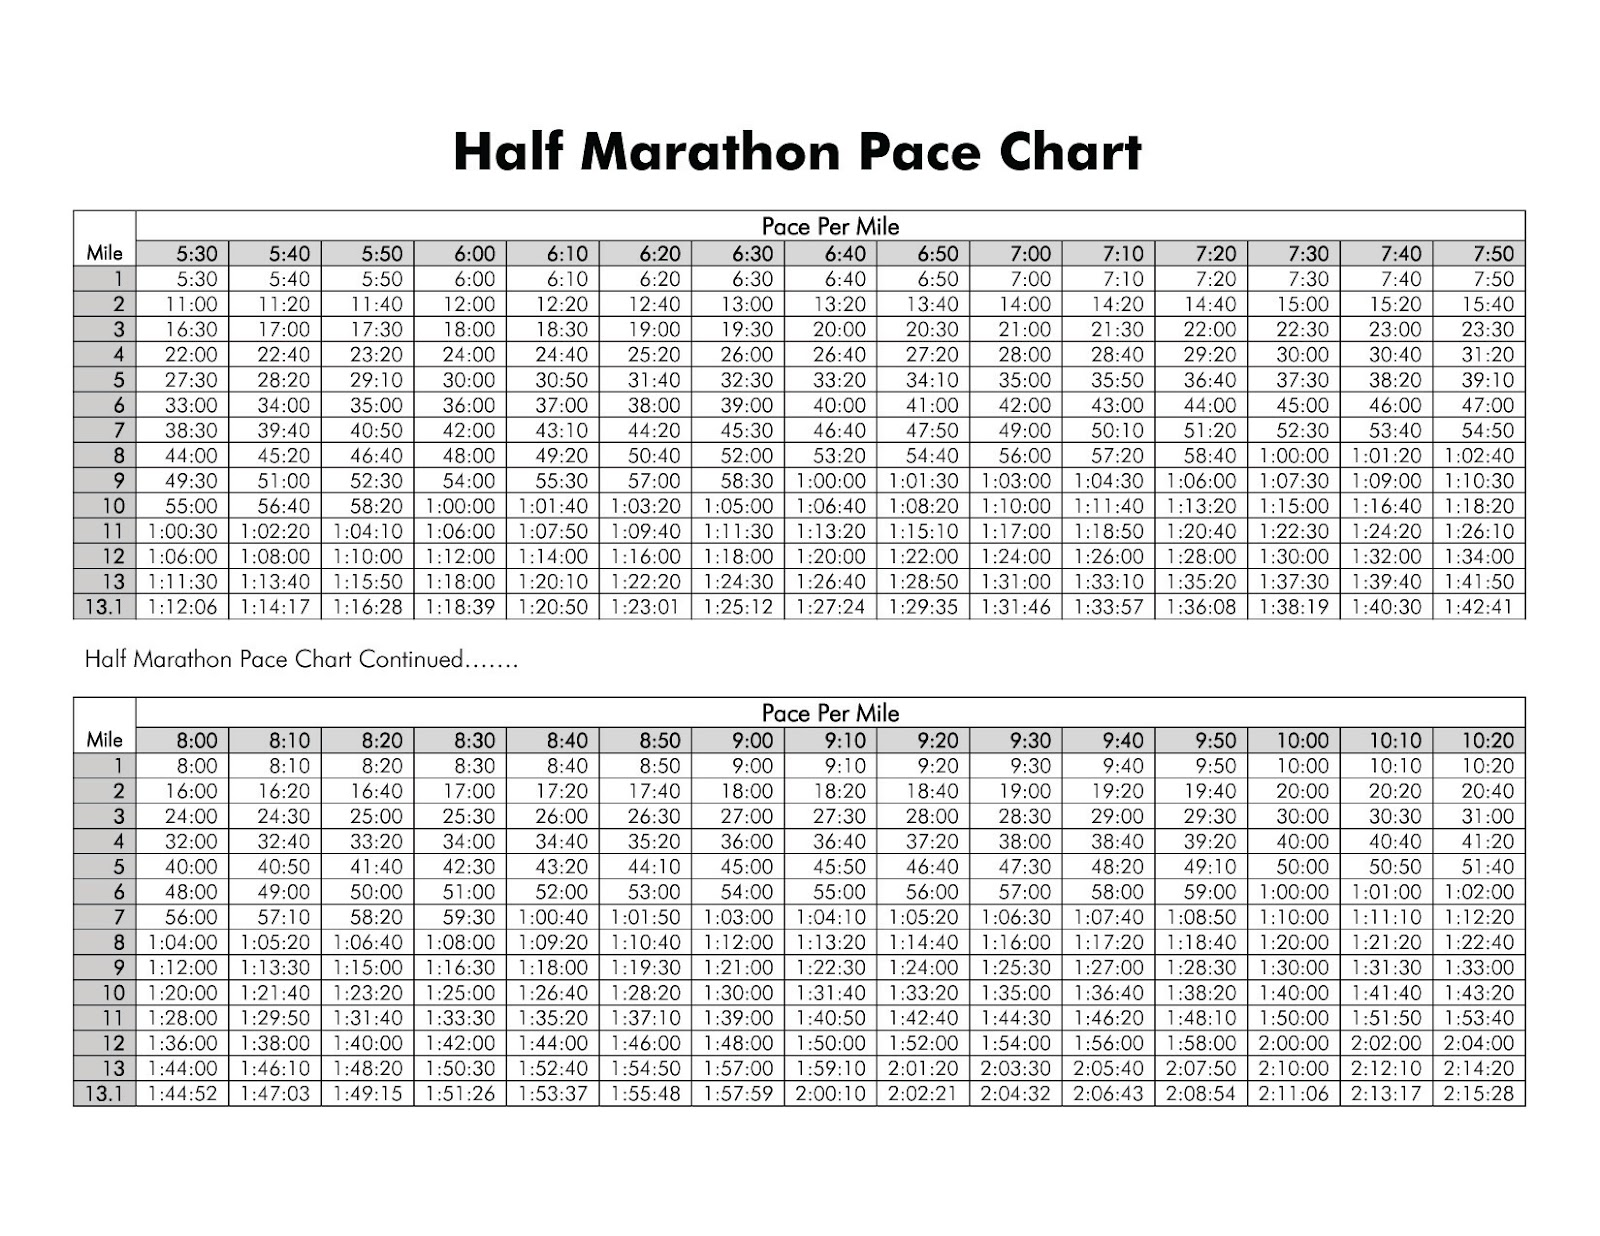 PACE CHART. Its Always Good To Have A Set Goal For This Type Of Race. Being  That This Will Be My First Half Marathon I Want To Be Realistic In My Goals.